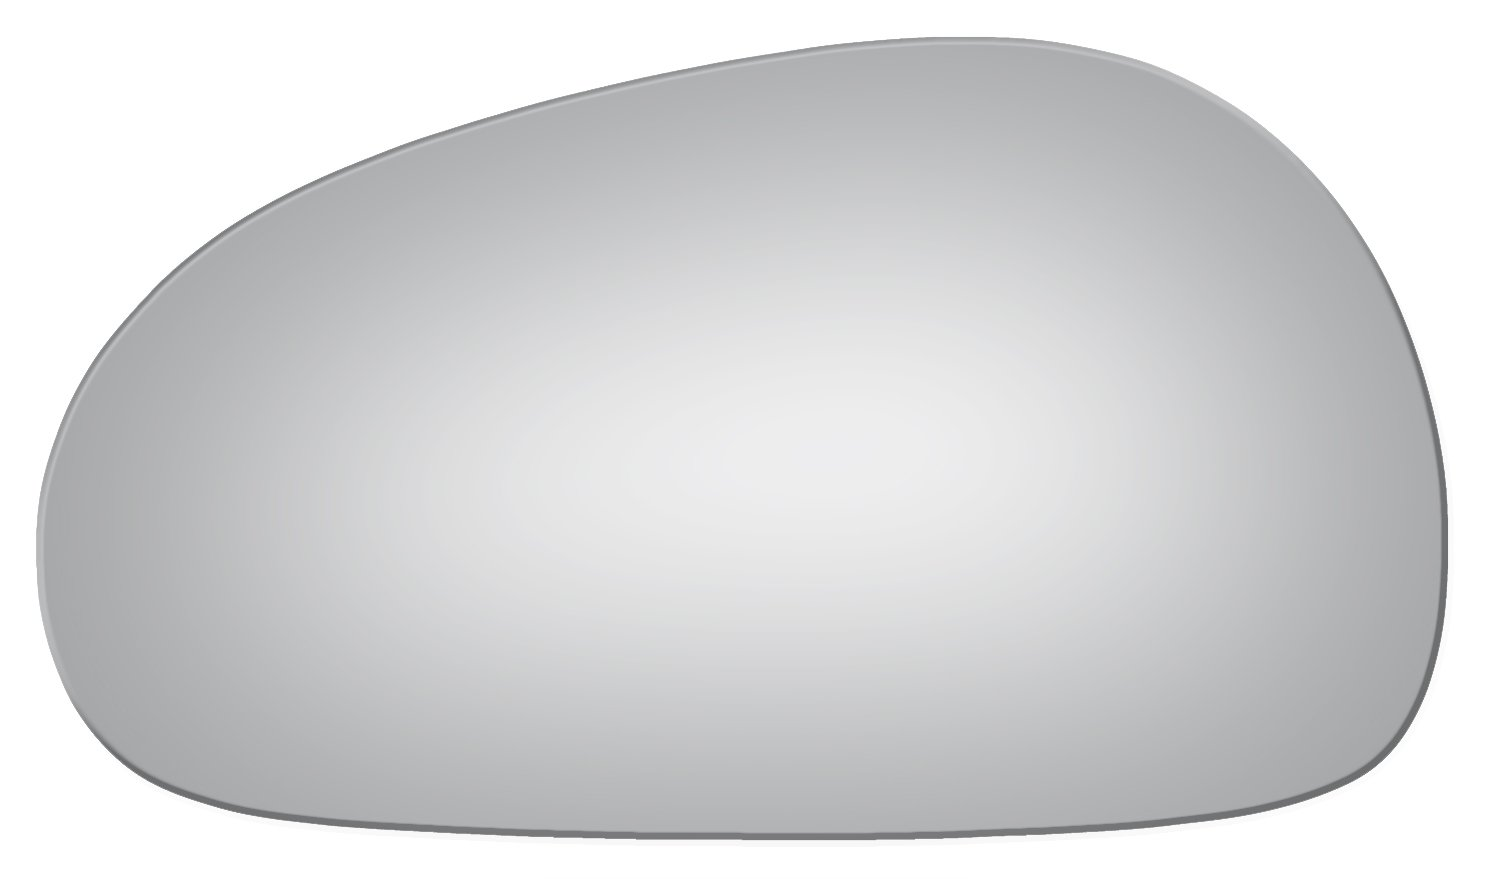 Burco 2622 Driver Side Power Replacement Mirror Glass for 94-04 Ford Mustang